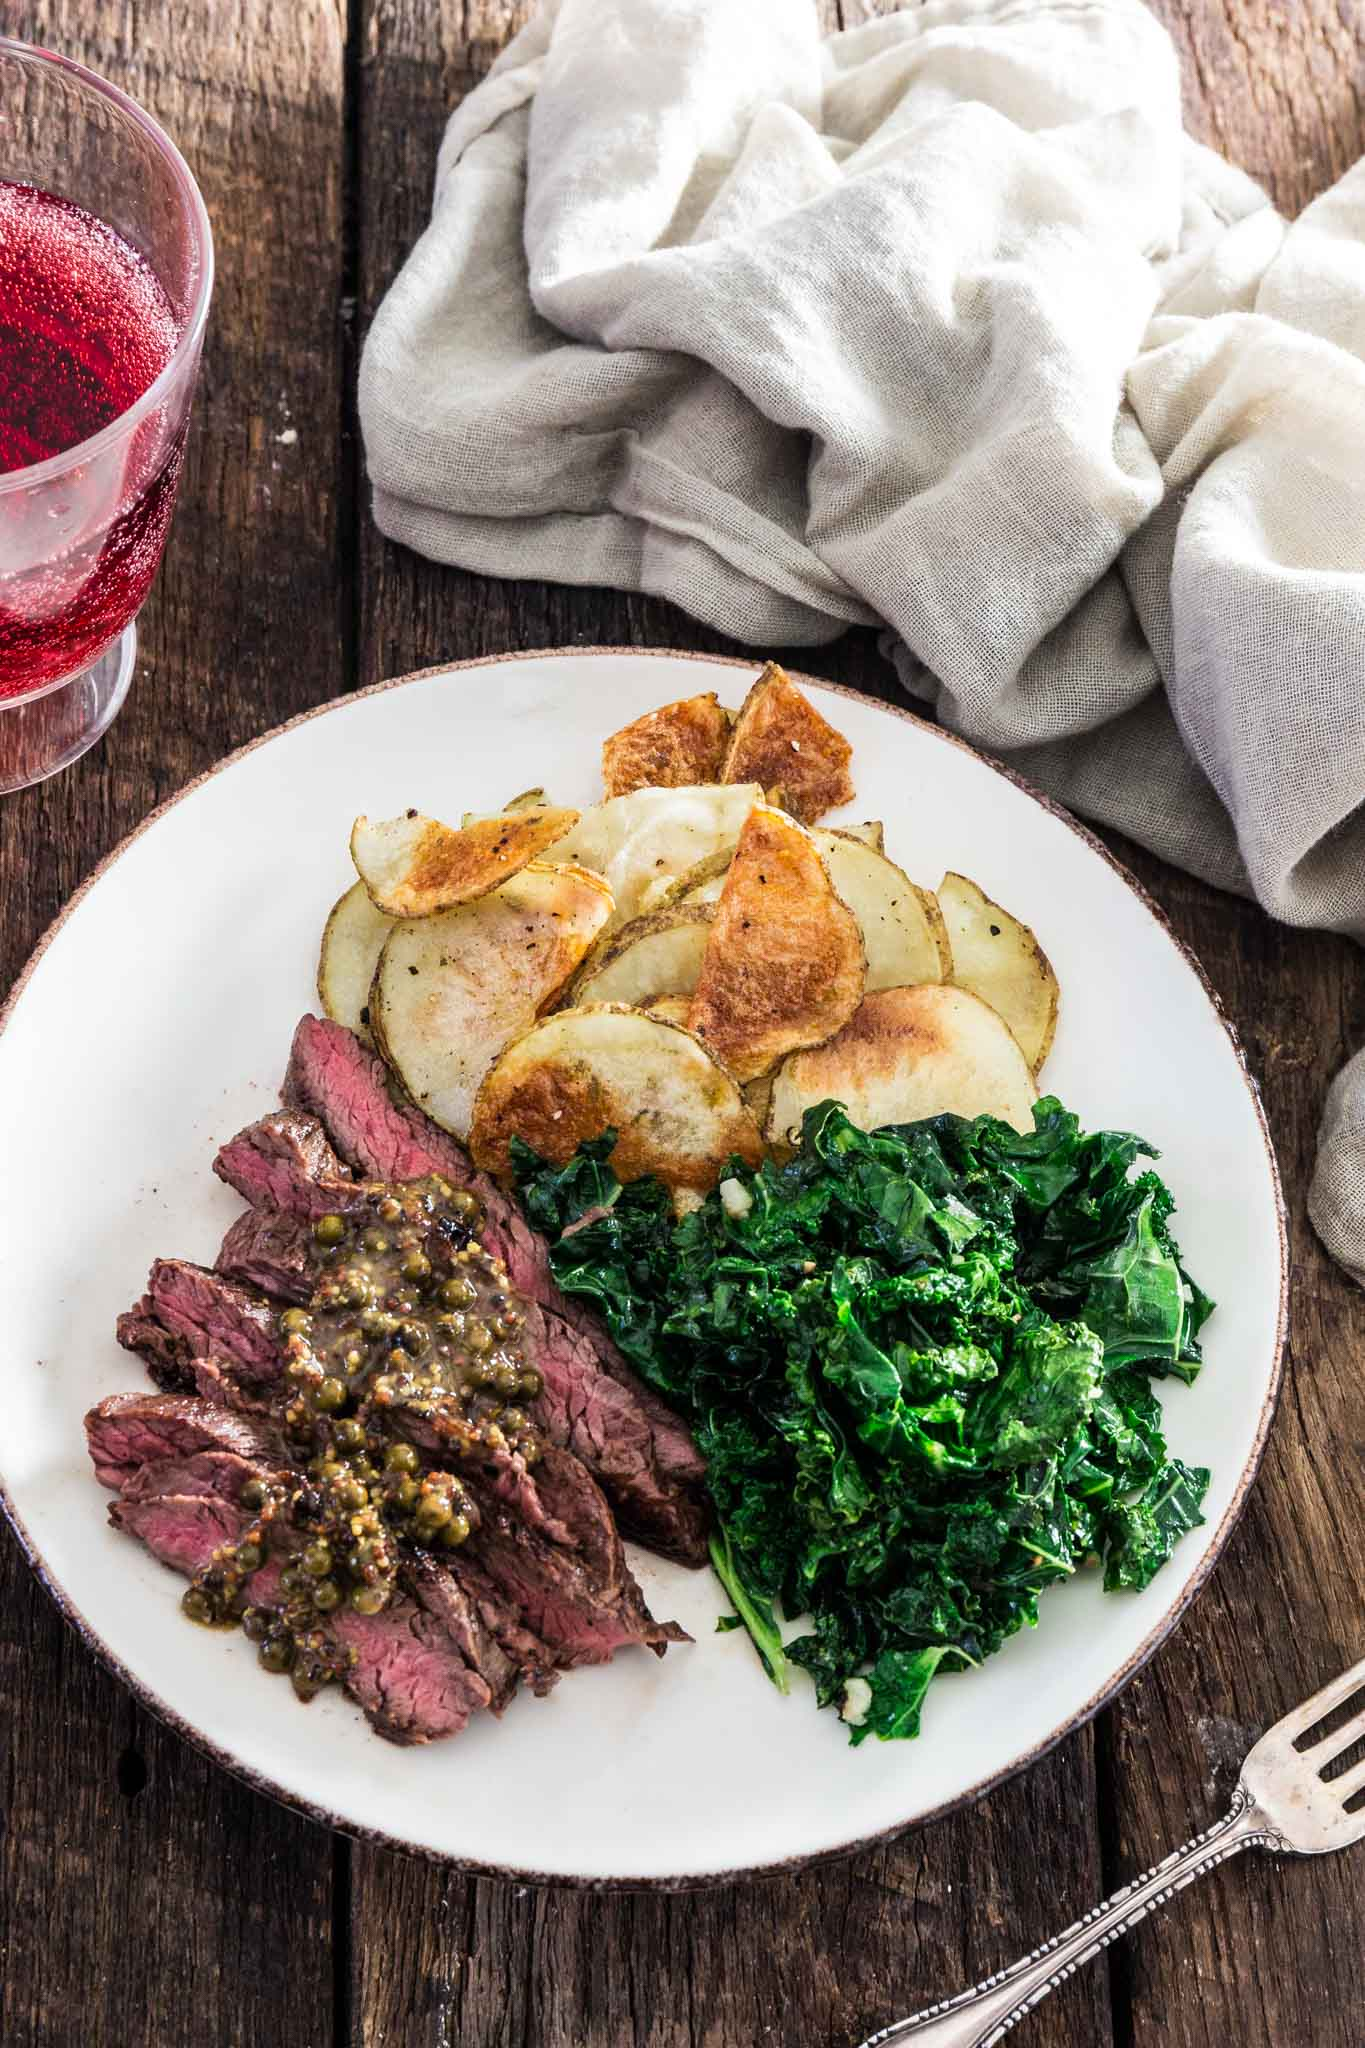 Steaks with Green Peppercorn Sauce   www.oliviascuisine.com   If you're looking for an impressive meal that is easy enough to put together on a weekday, this Steak with Green Peppercorn Sauce is the answer! The steak is cooked to perfection and served with a silky mustard-y peppercorn sauce, kale and roasted potatoes.